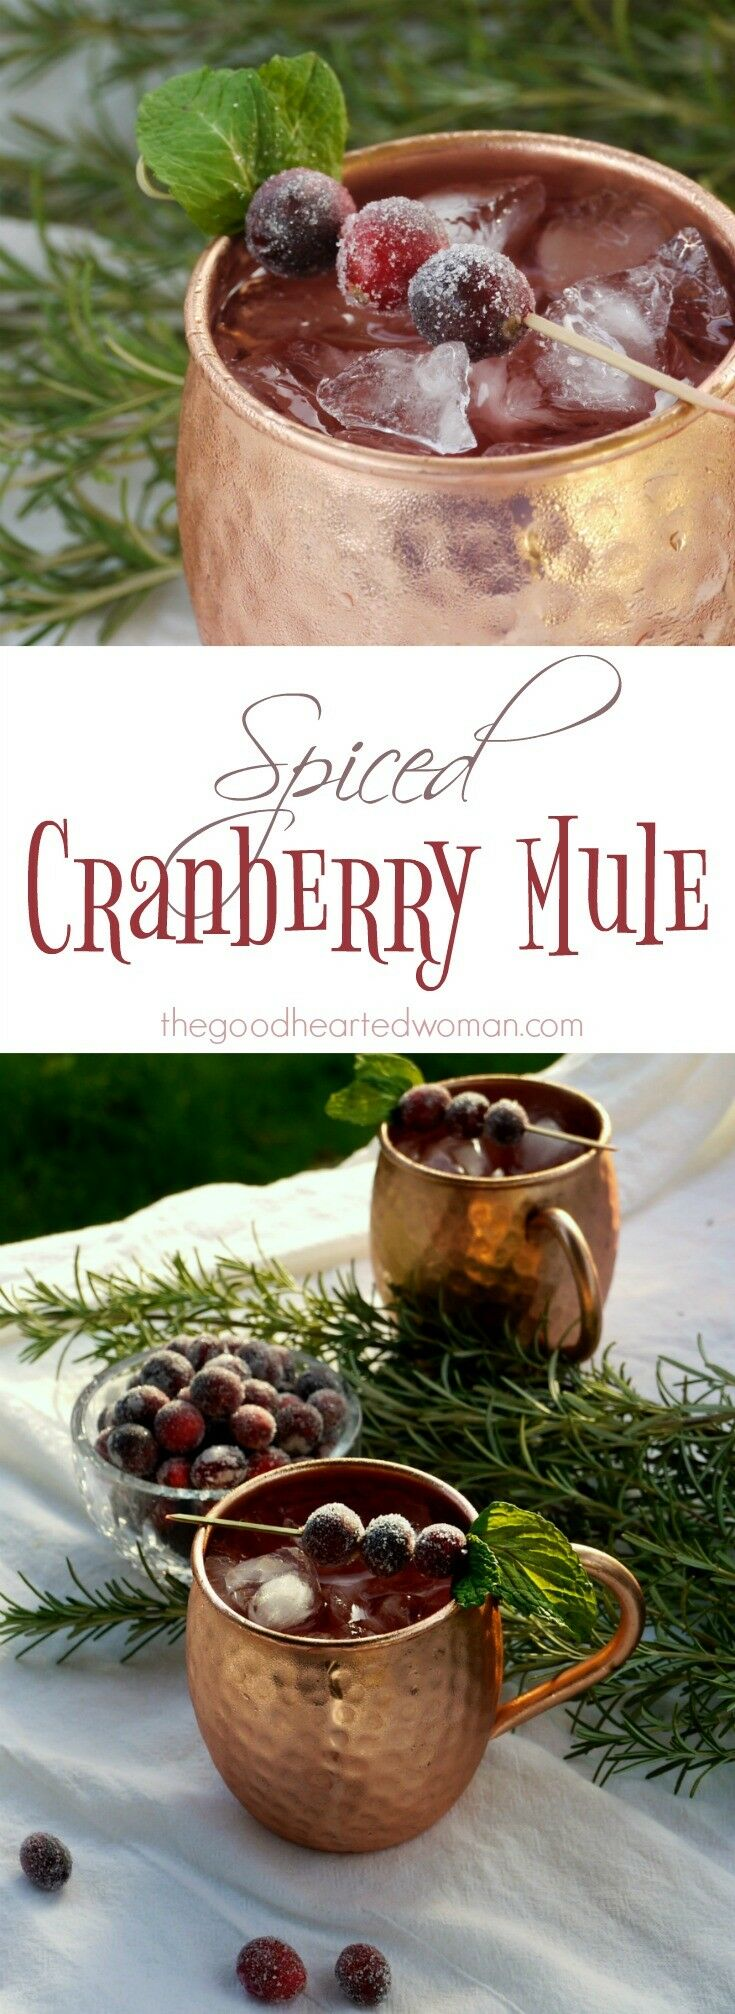 Spiced Cranberry Mule | The Good Hearted Woman